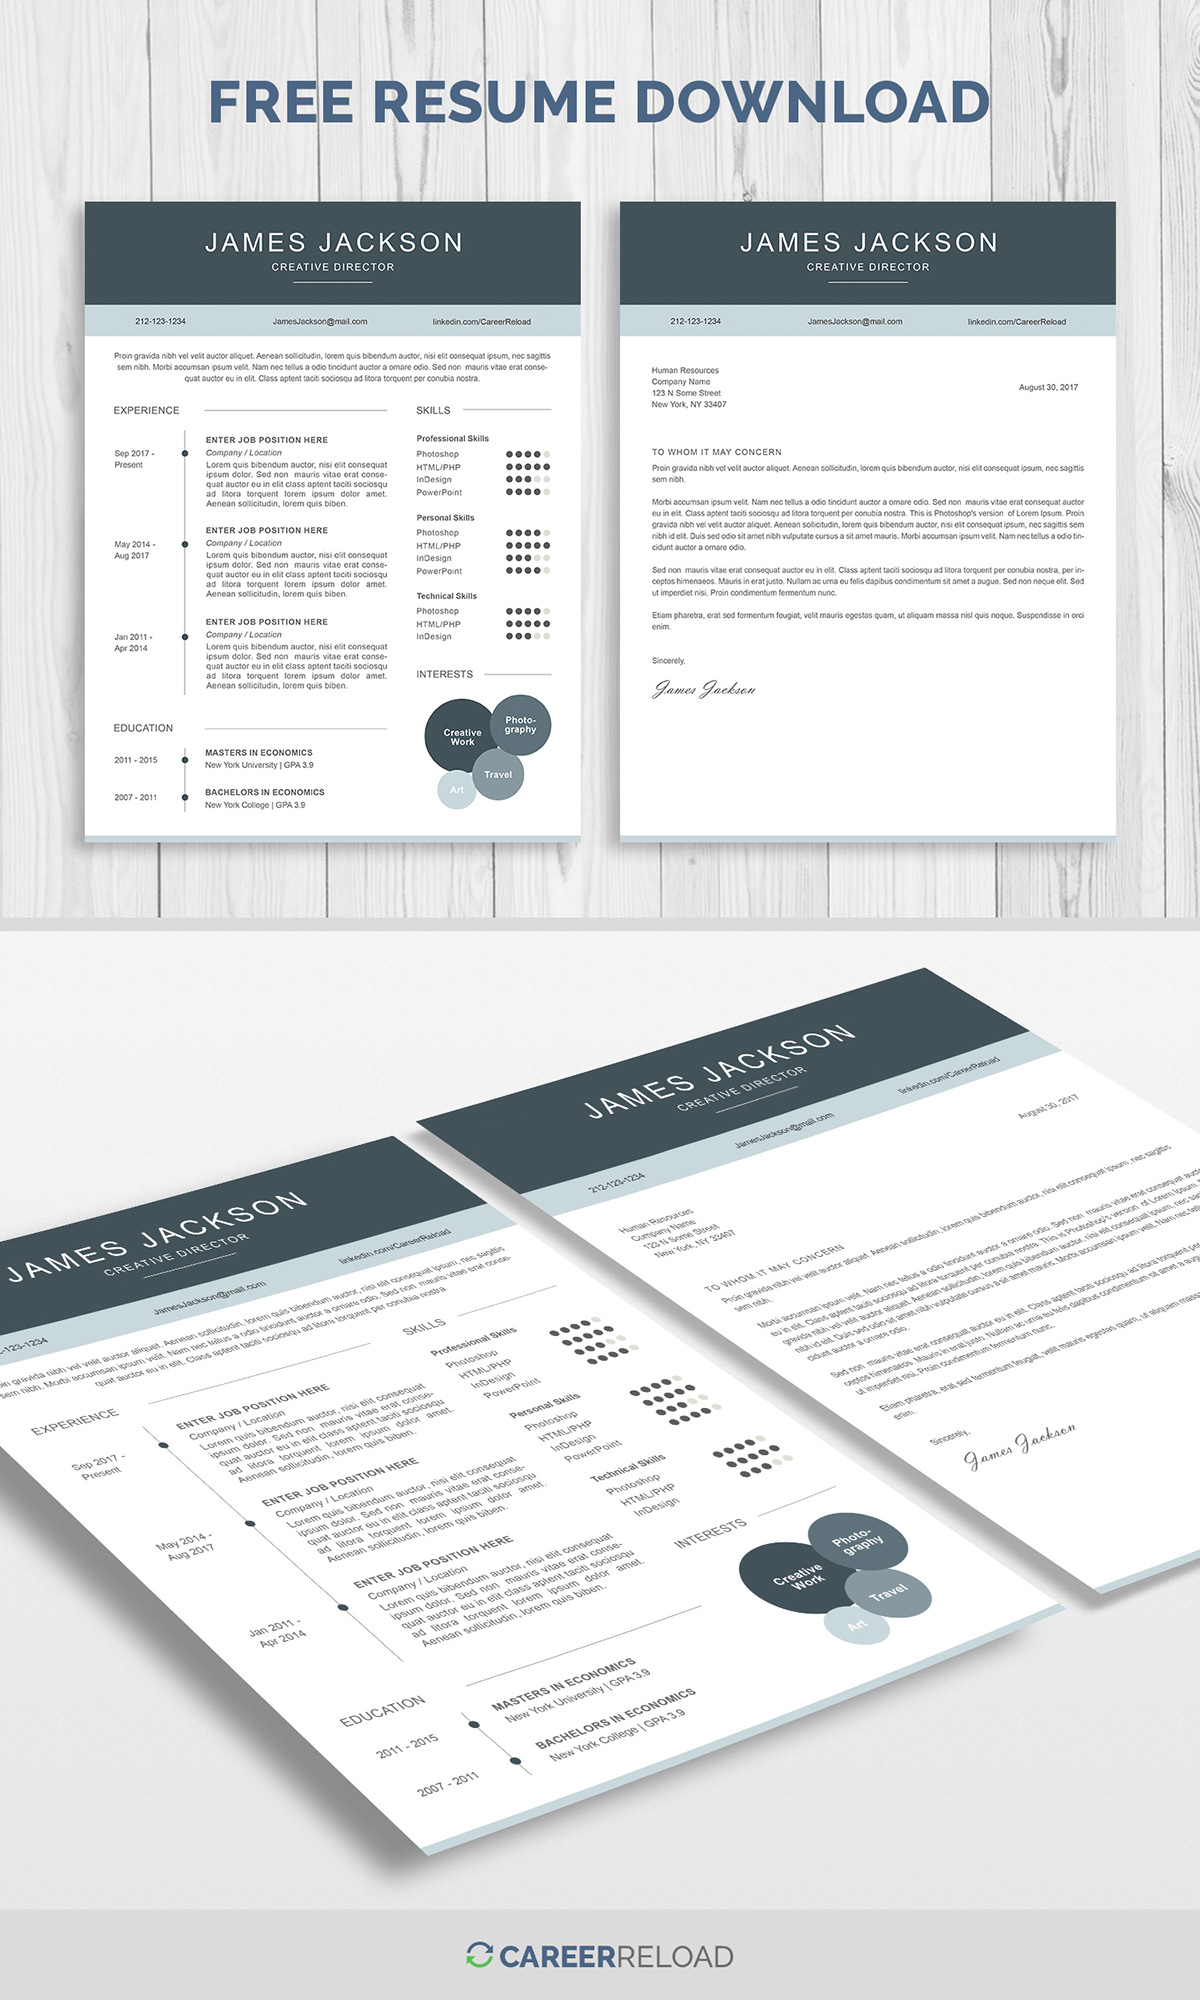 Free Resume Template And Cover Letter On Pantone Canvas Gallery